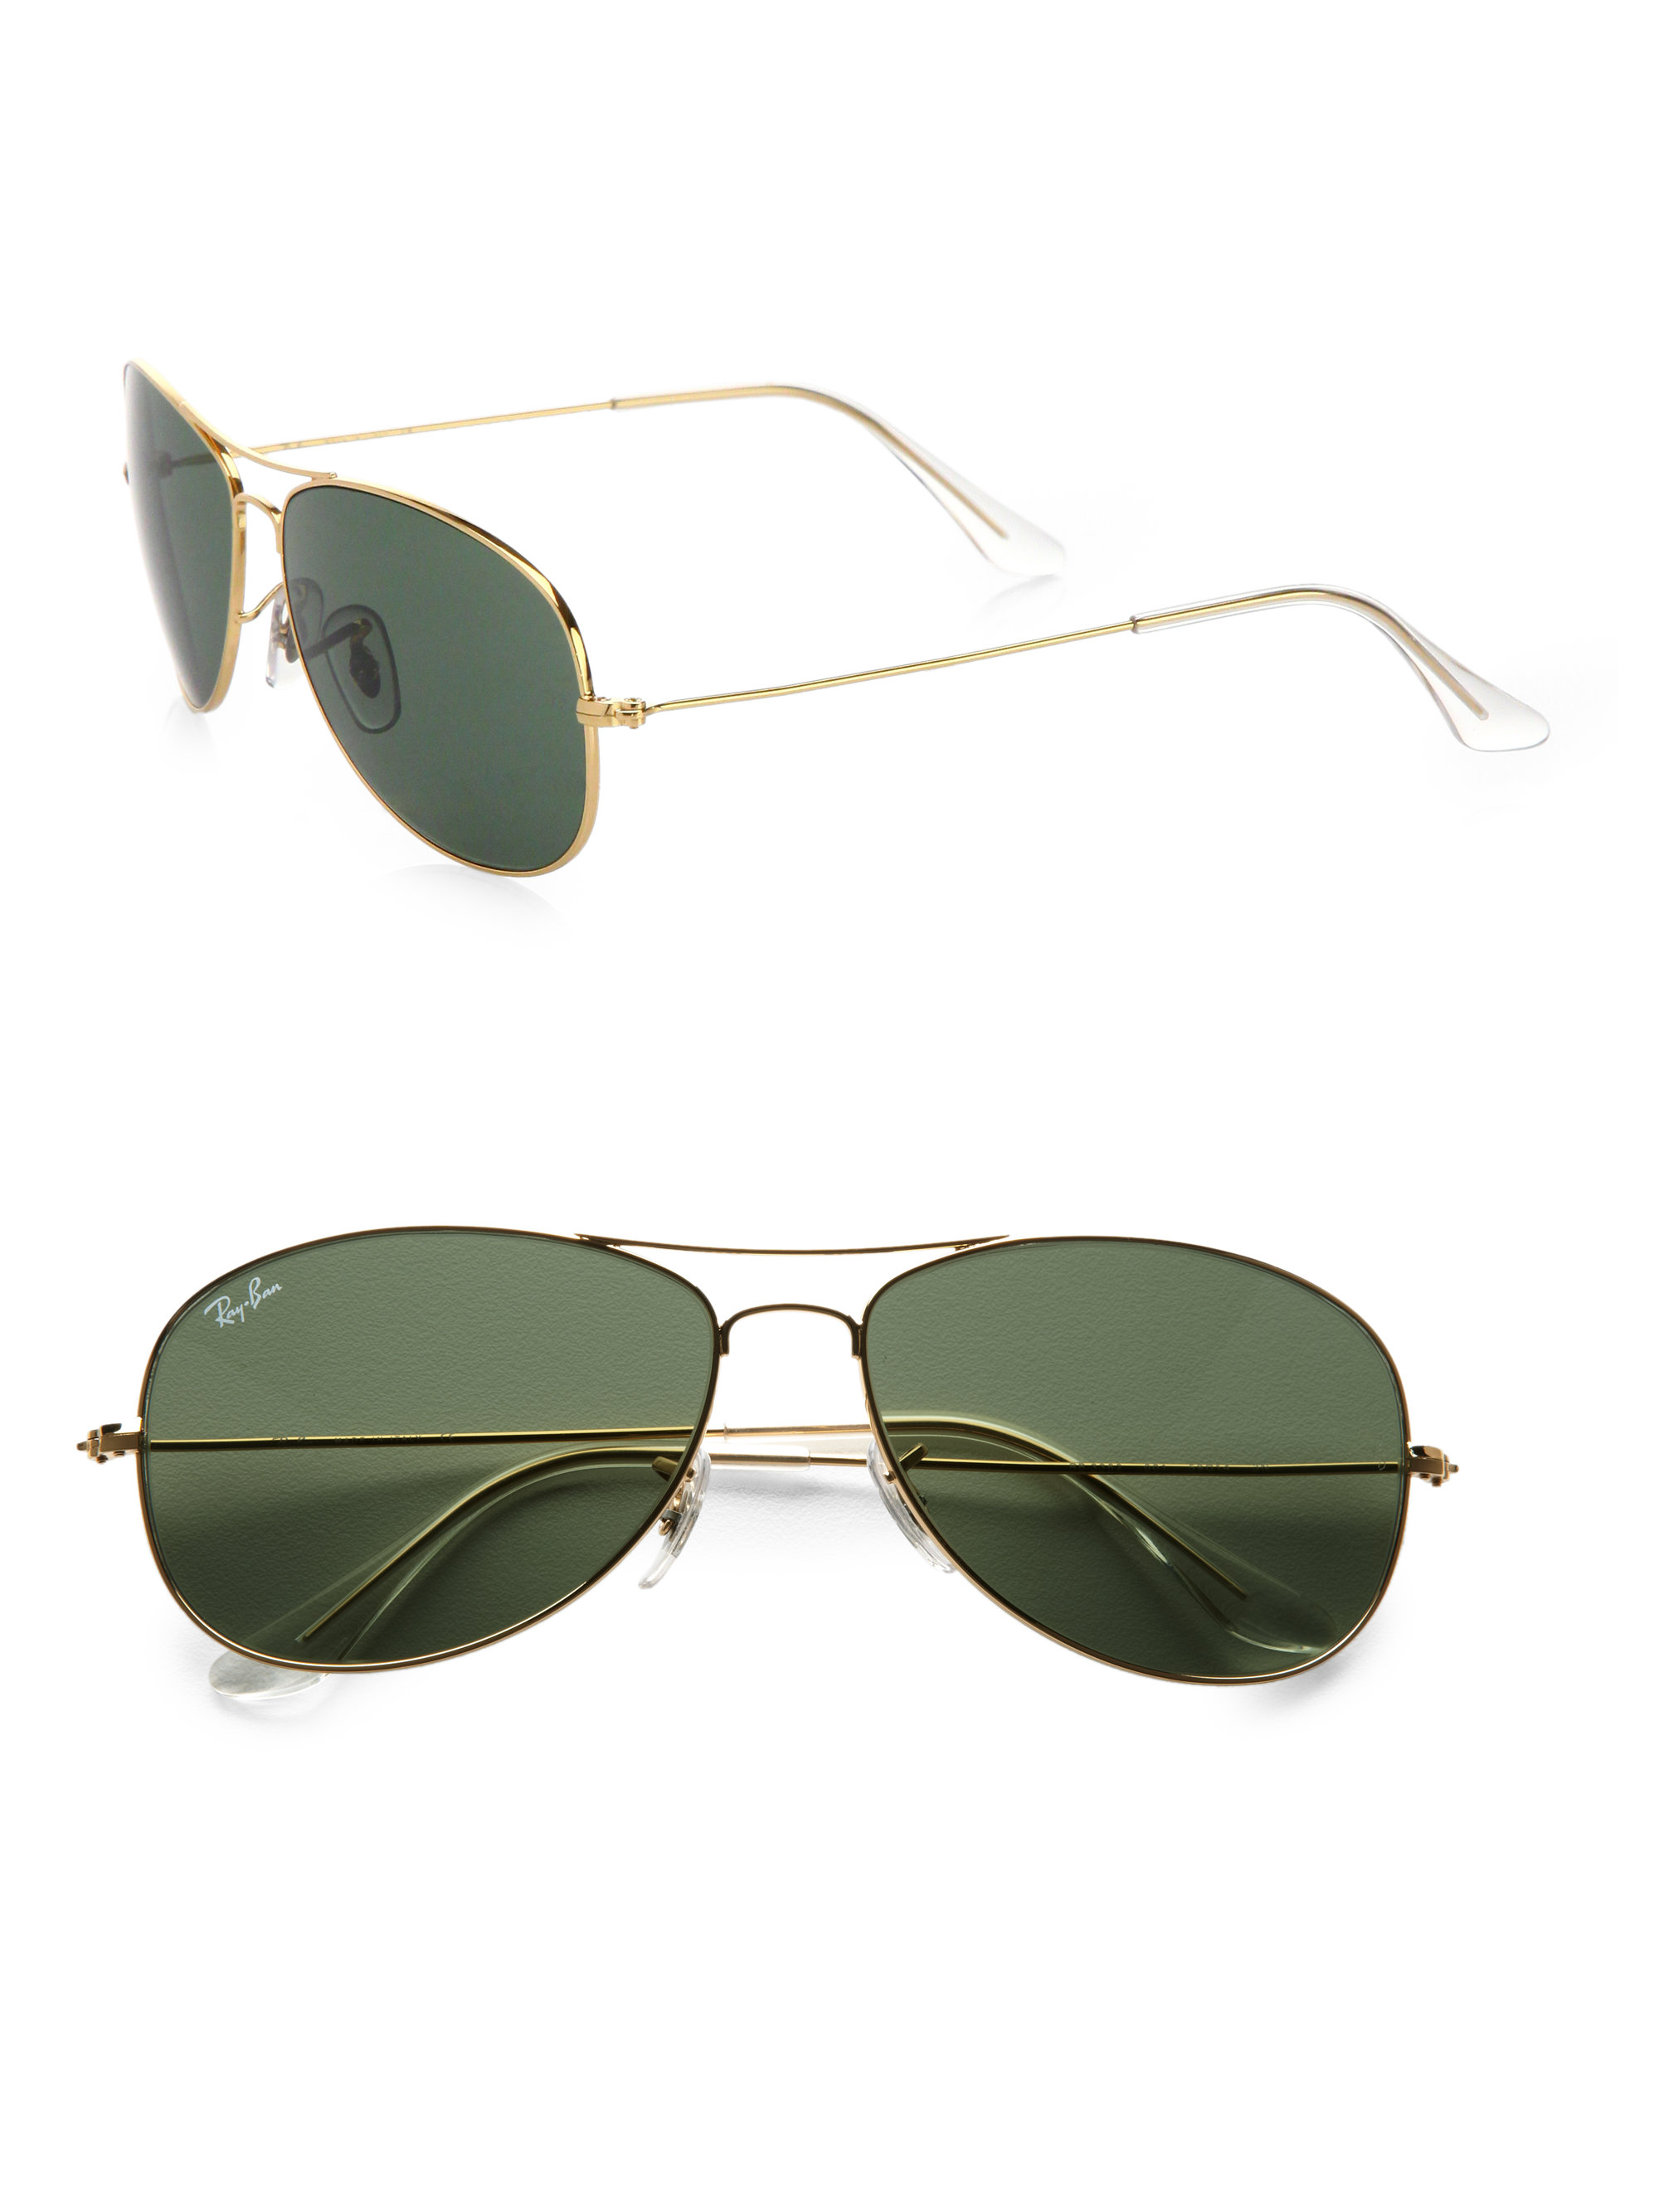 ray ban classic aviator sunglasses in black gold lyst. Black Bedroom Furniture Sets. Home Design Ideas